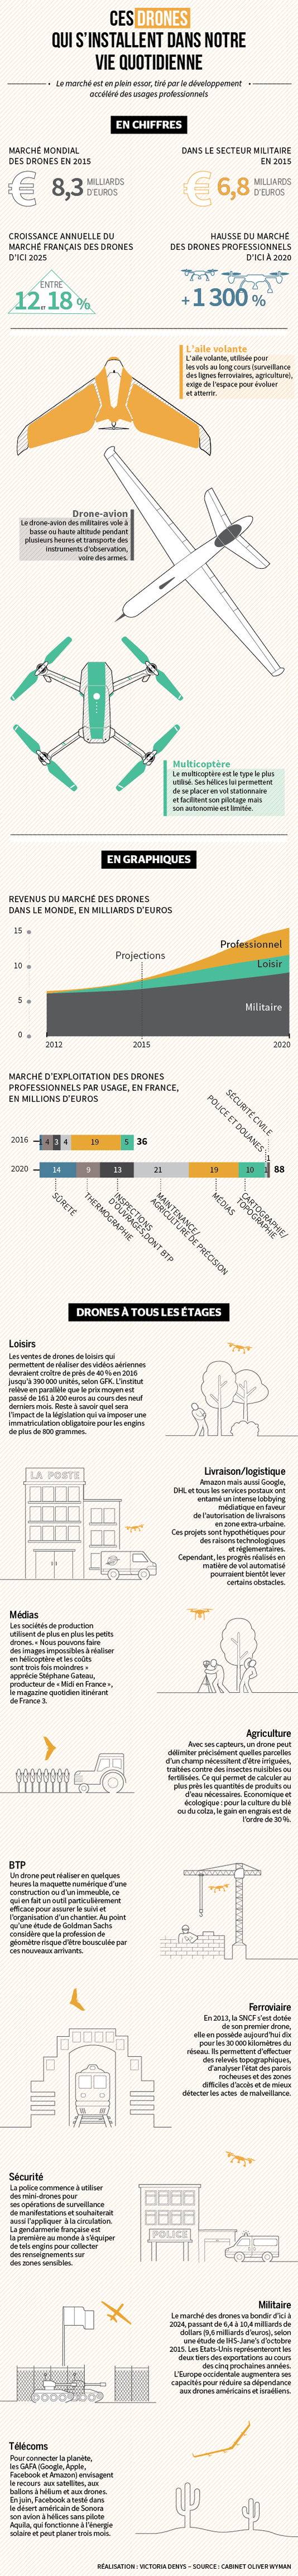 infographie usages drones